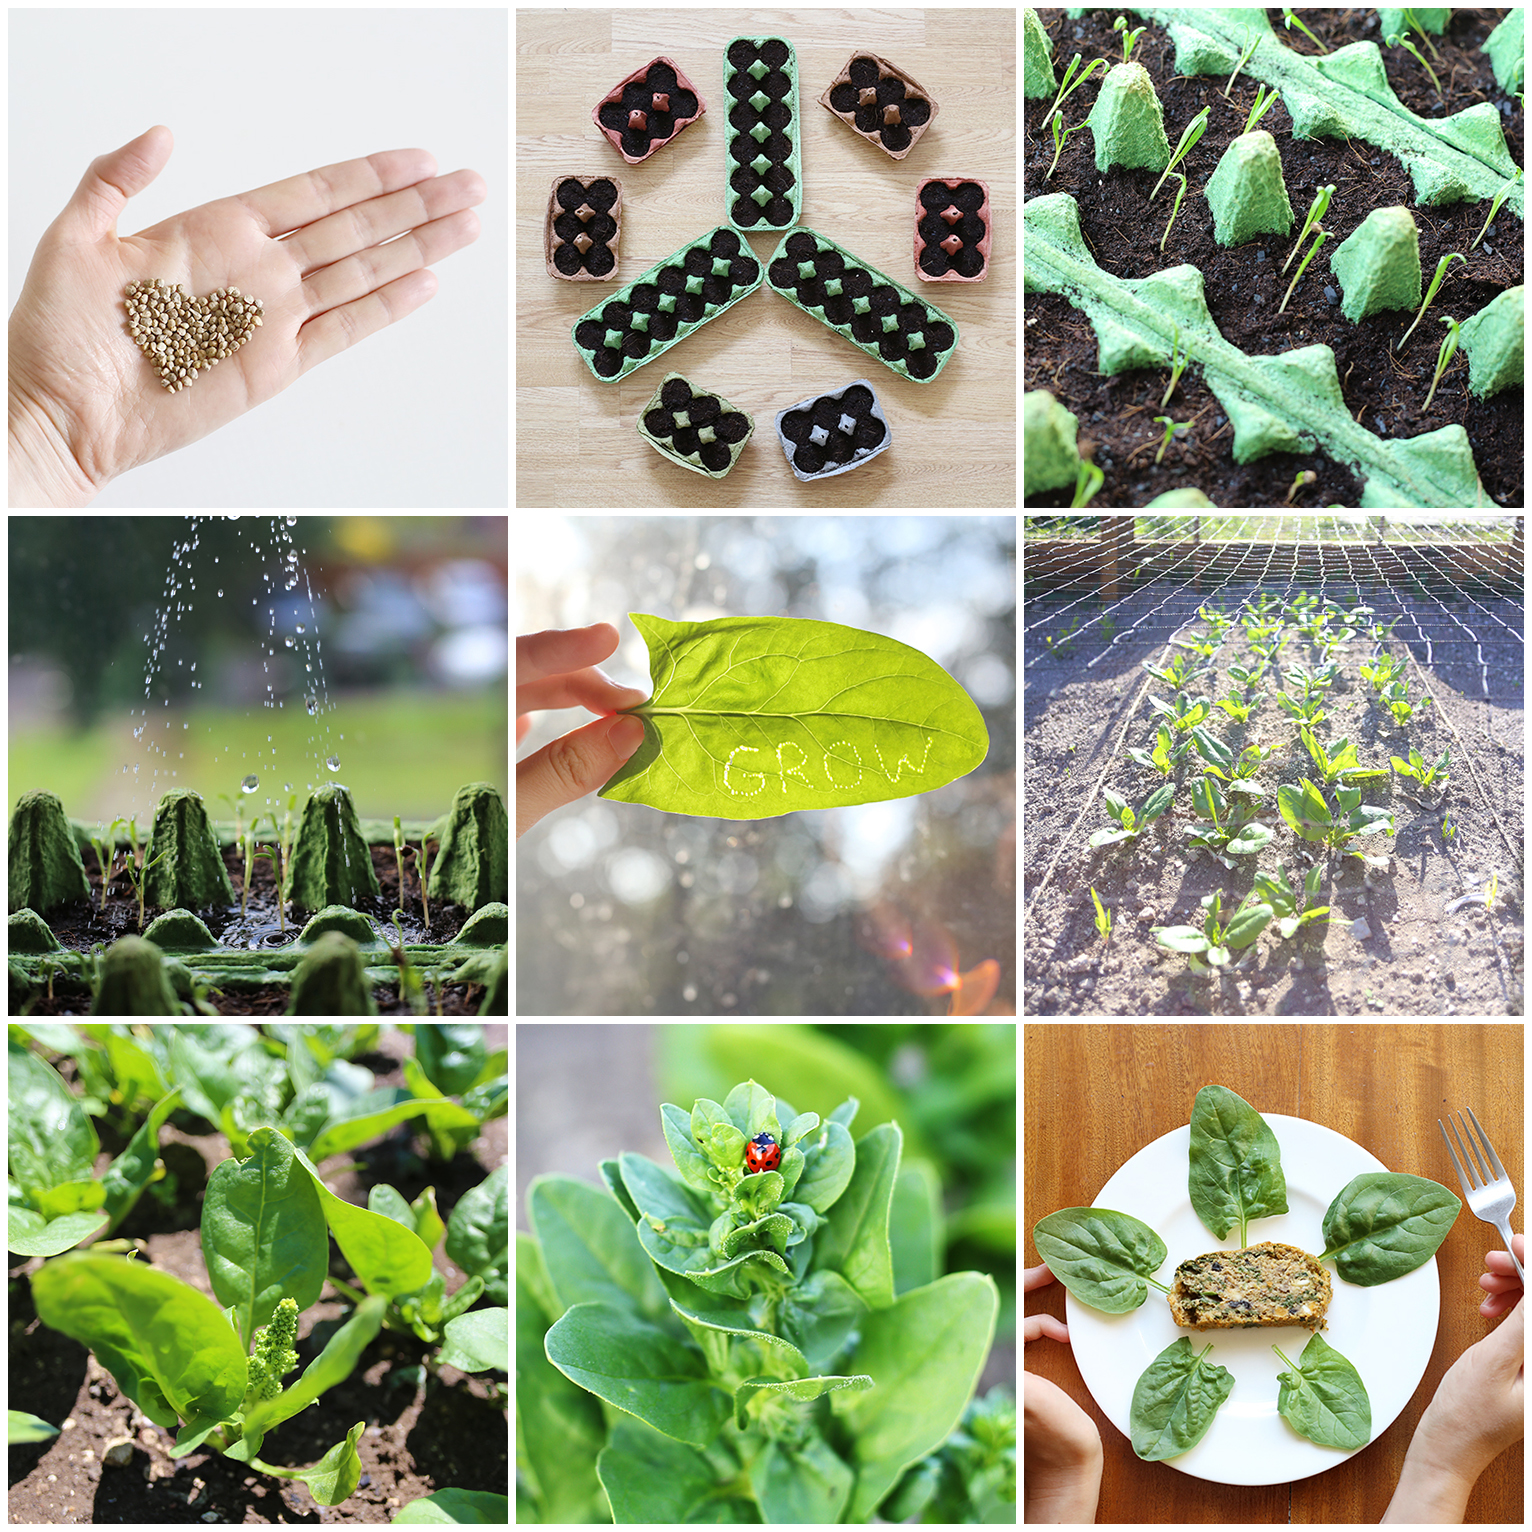 GROW_spinach_story_photo_collage.jpg